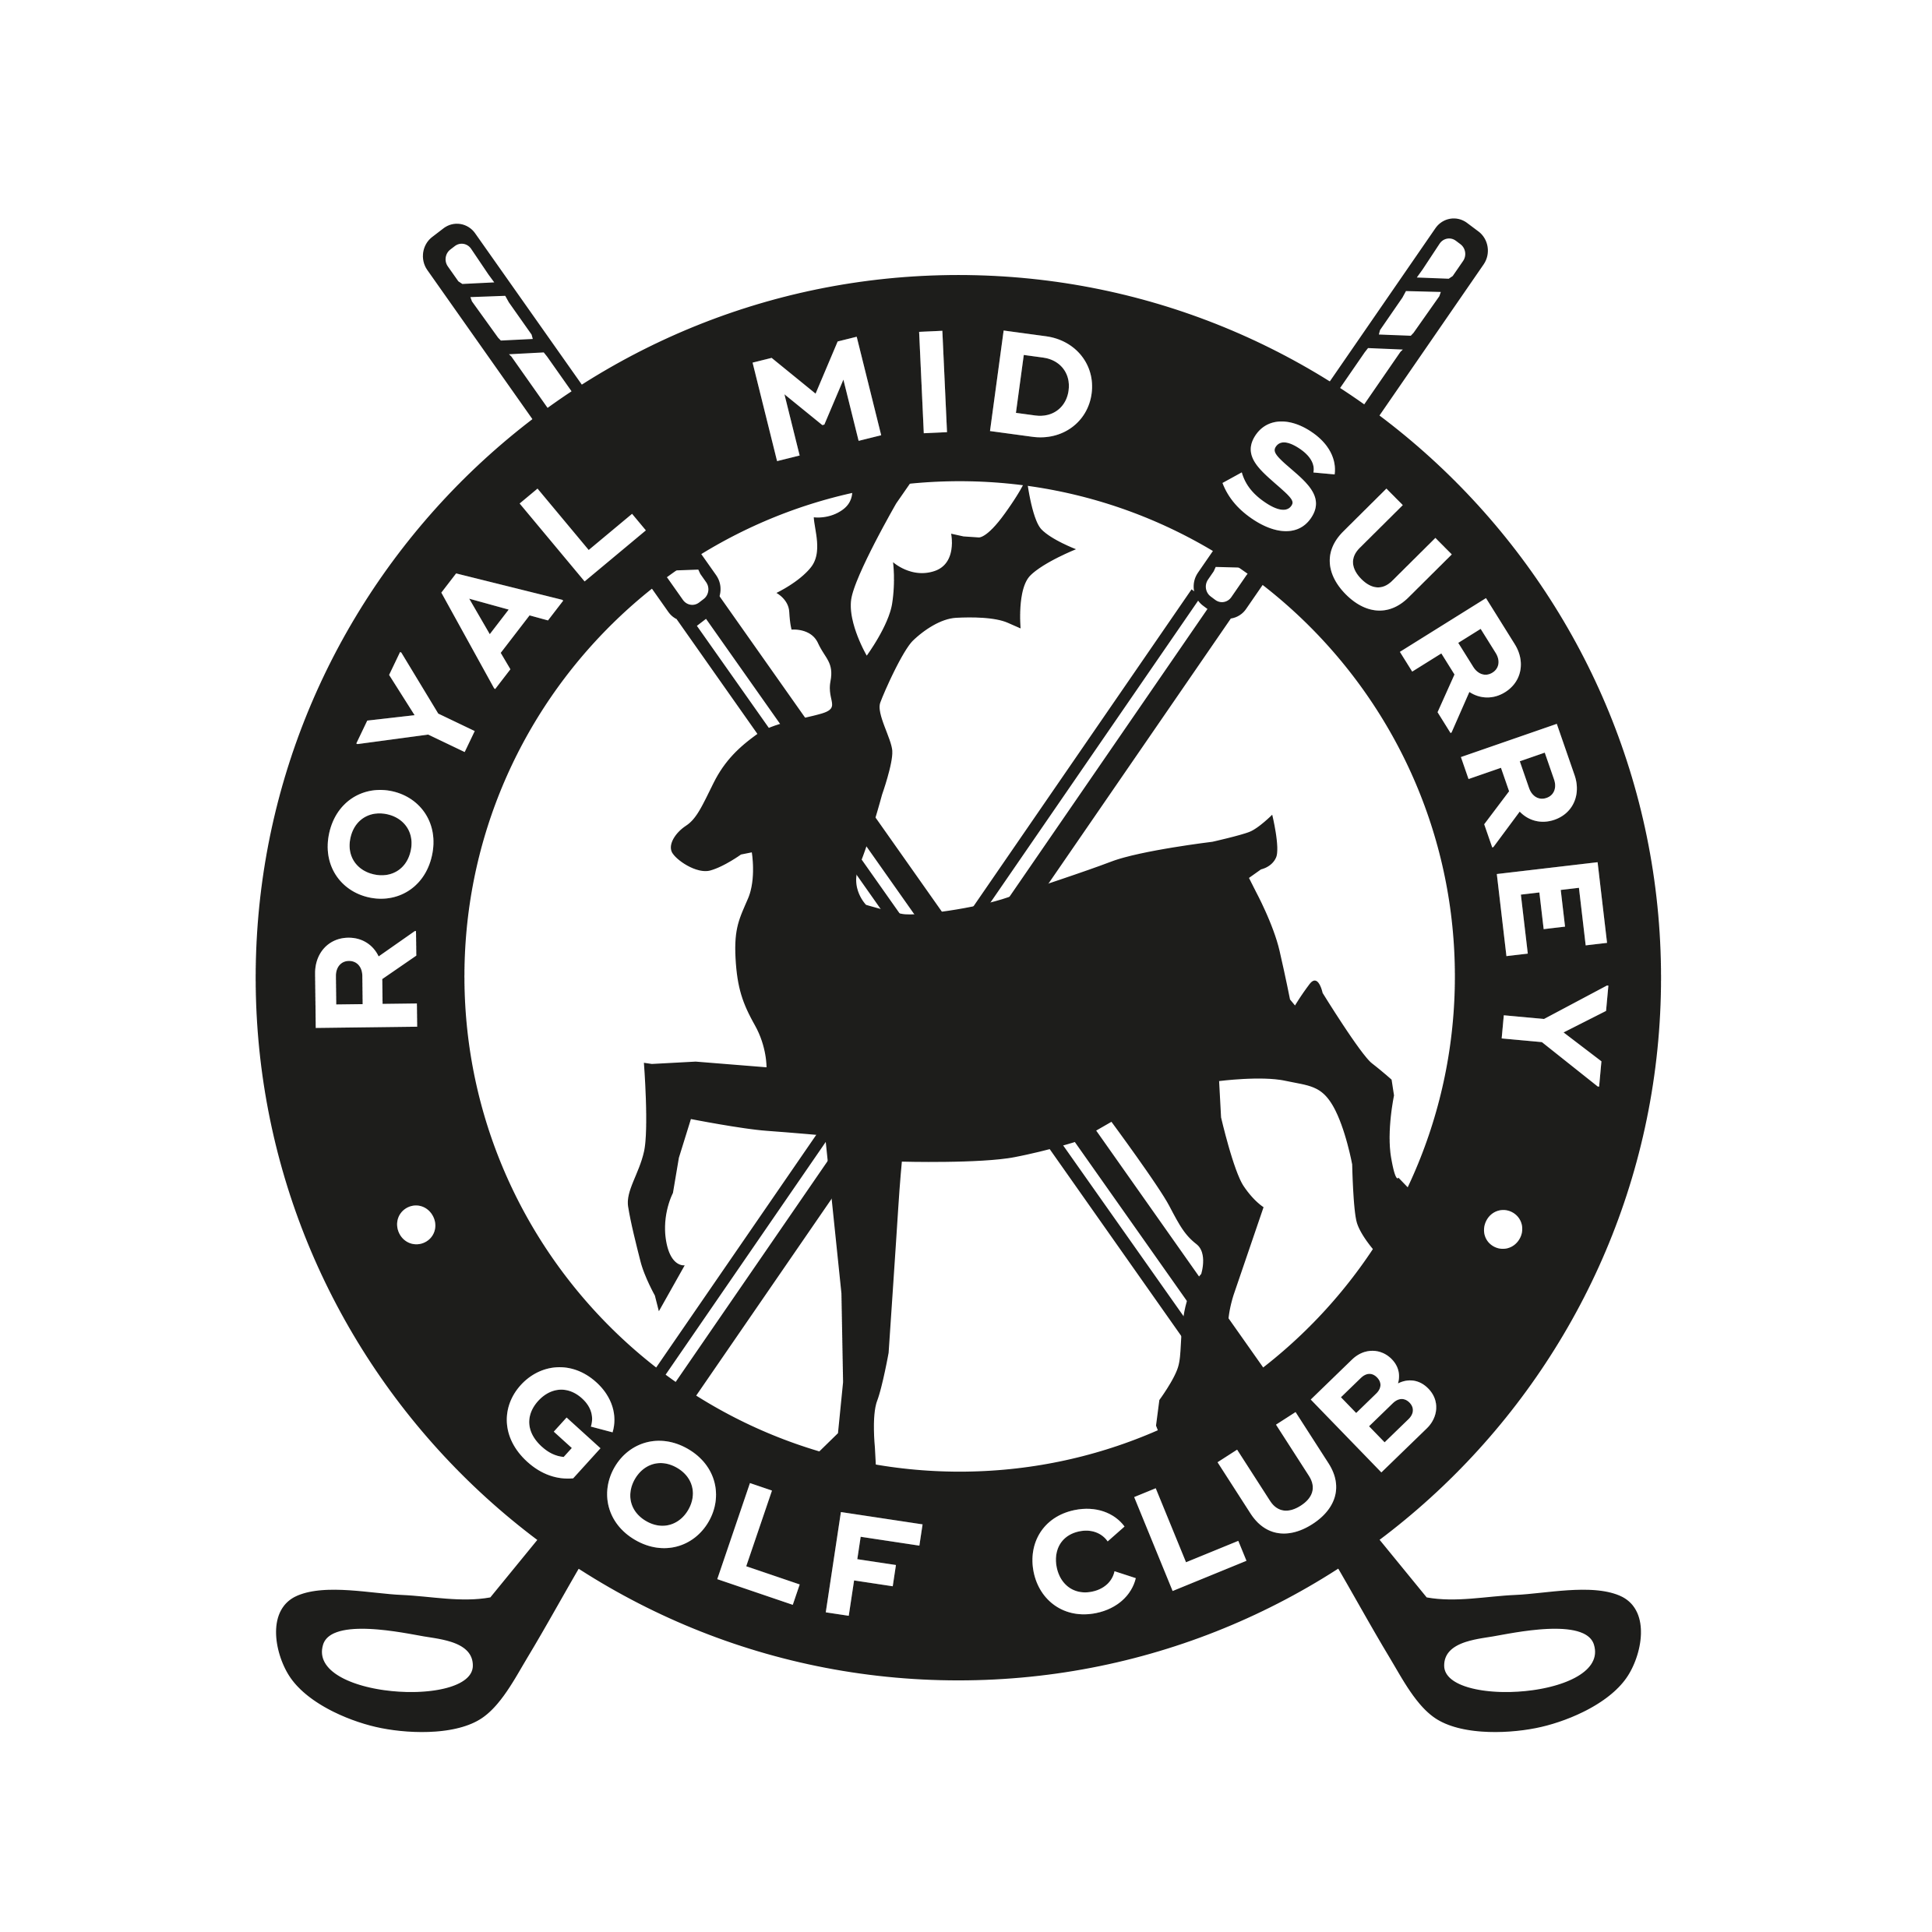 Cross golf clubs clipart png royalty free library Royal Mid-Surrey Golf Club :: Golf Club png royalty free library